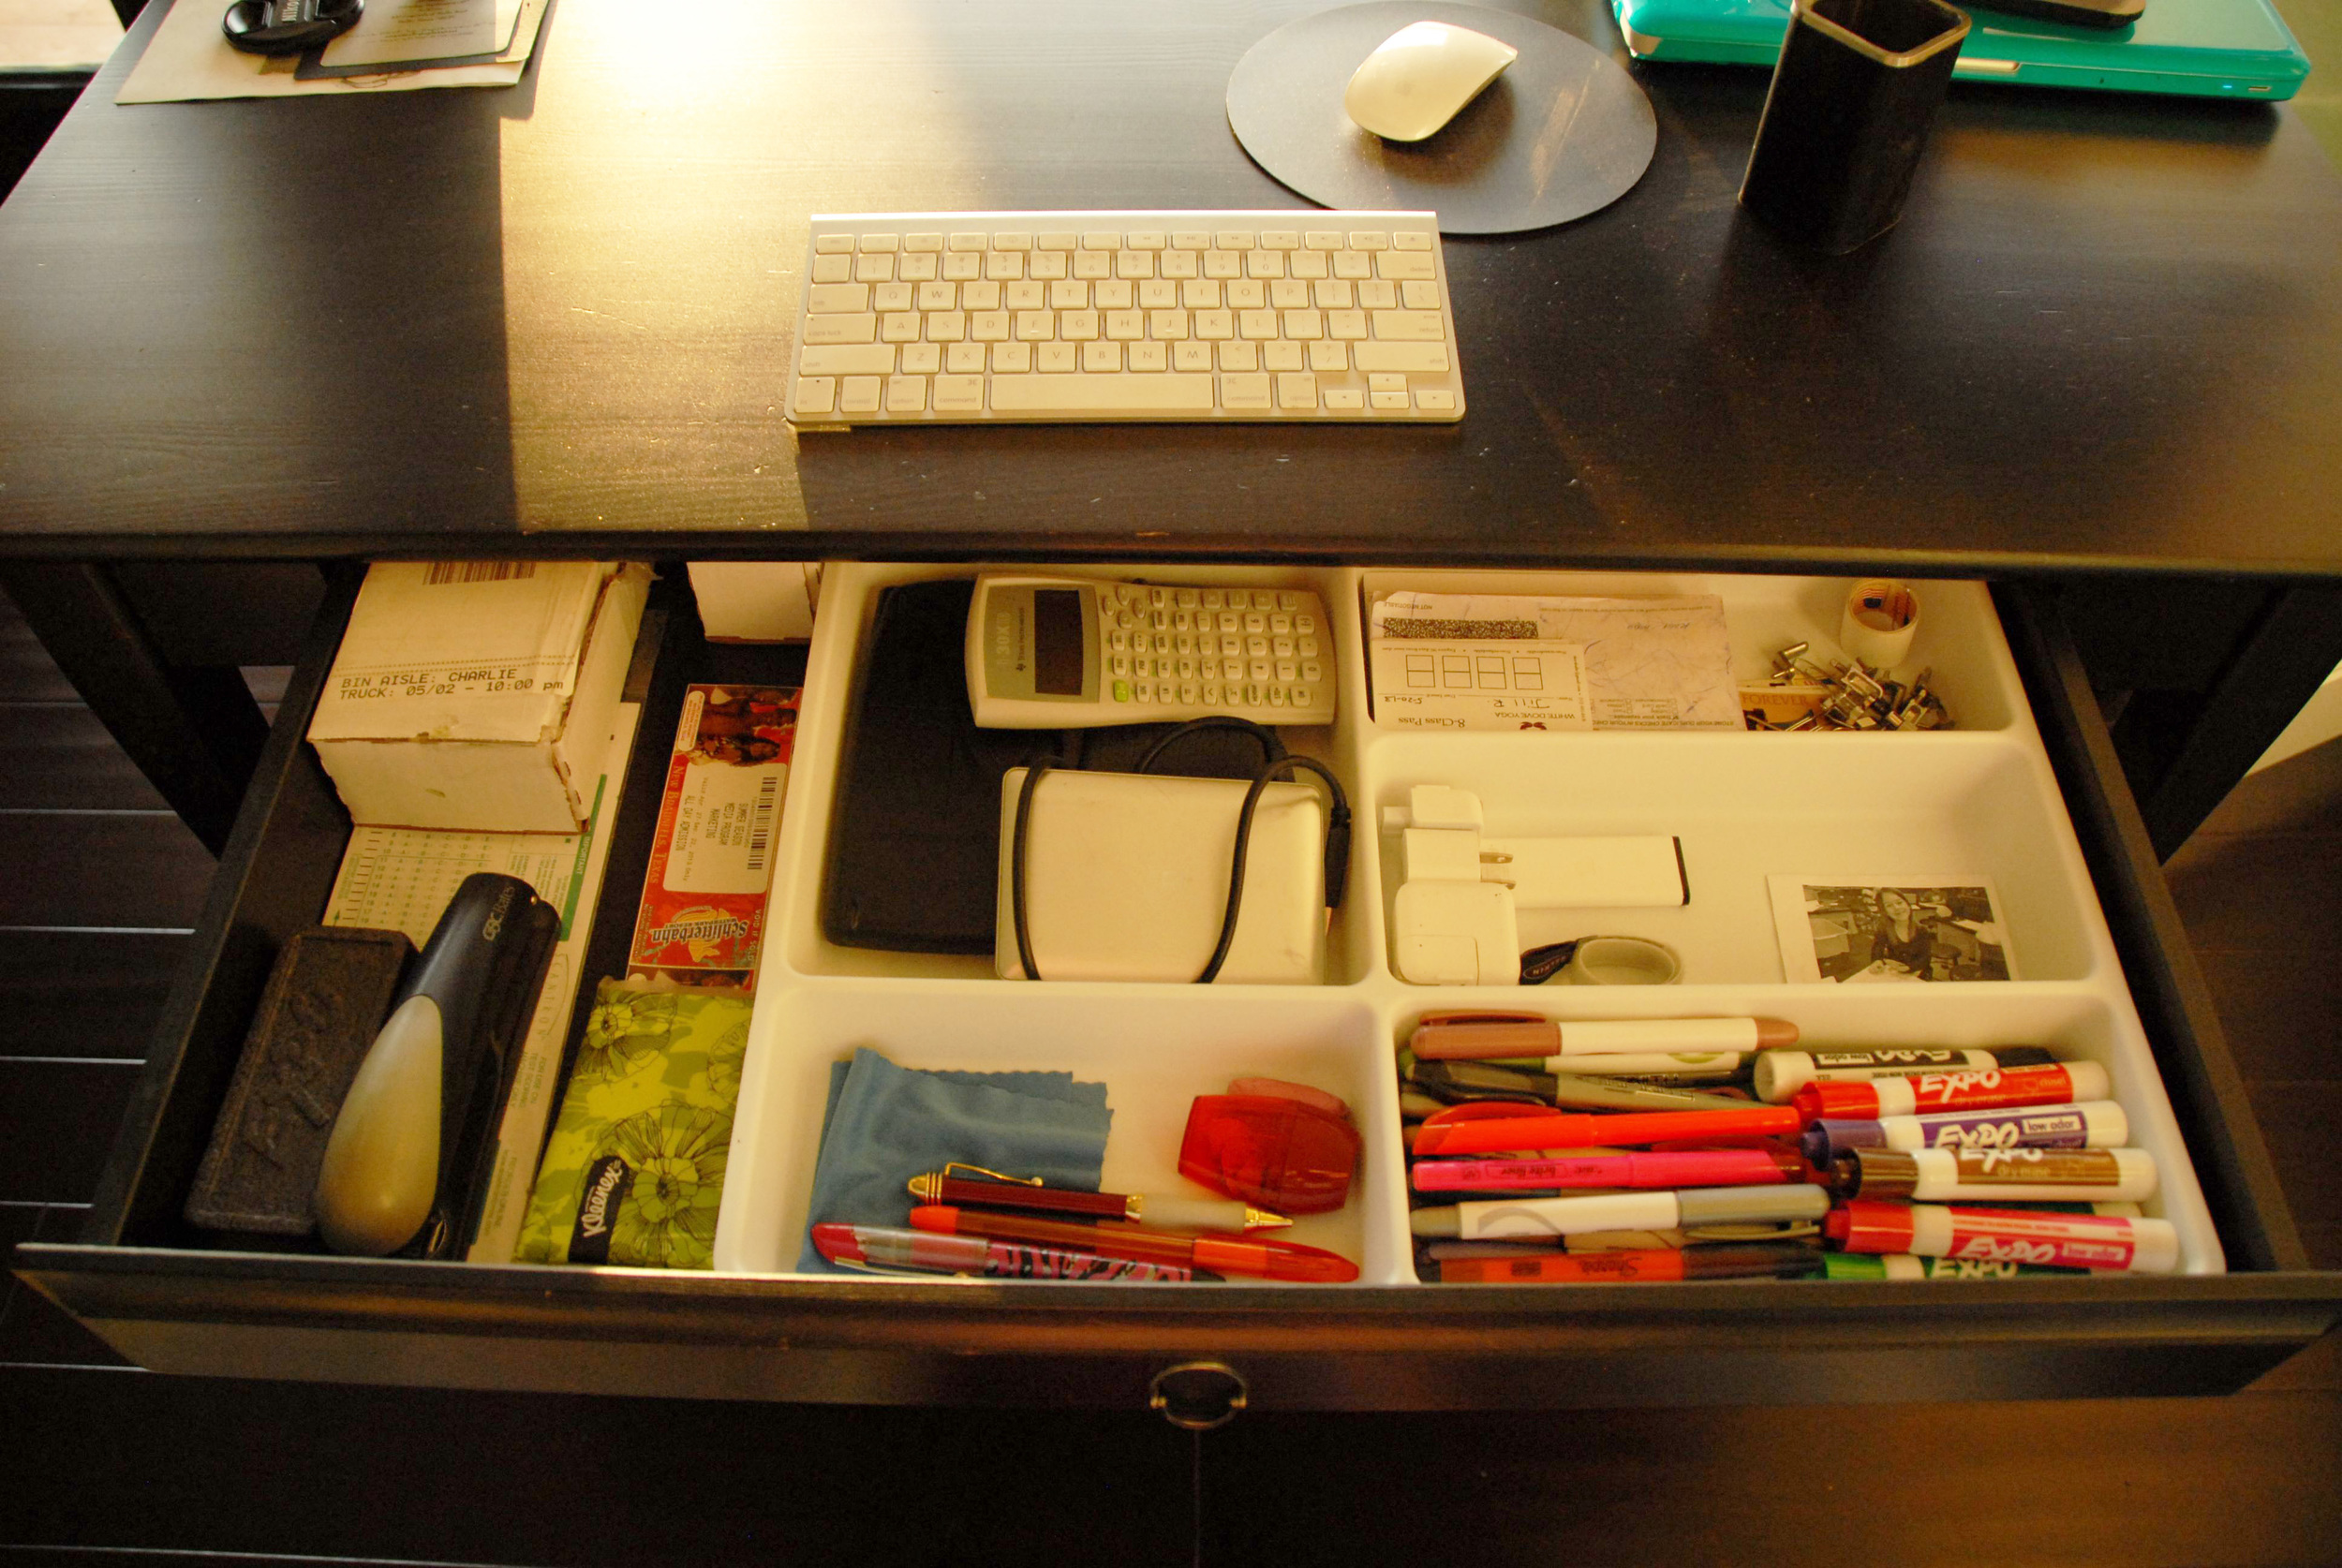 The organized desk drawer